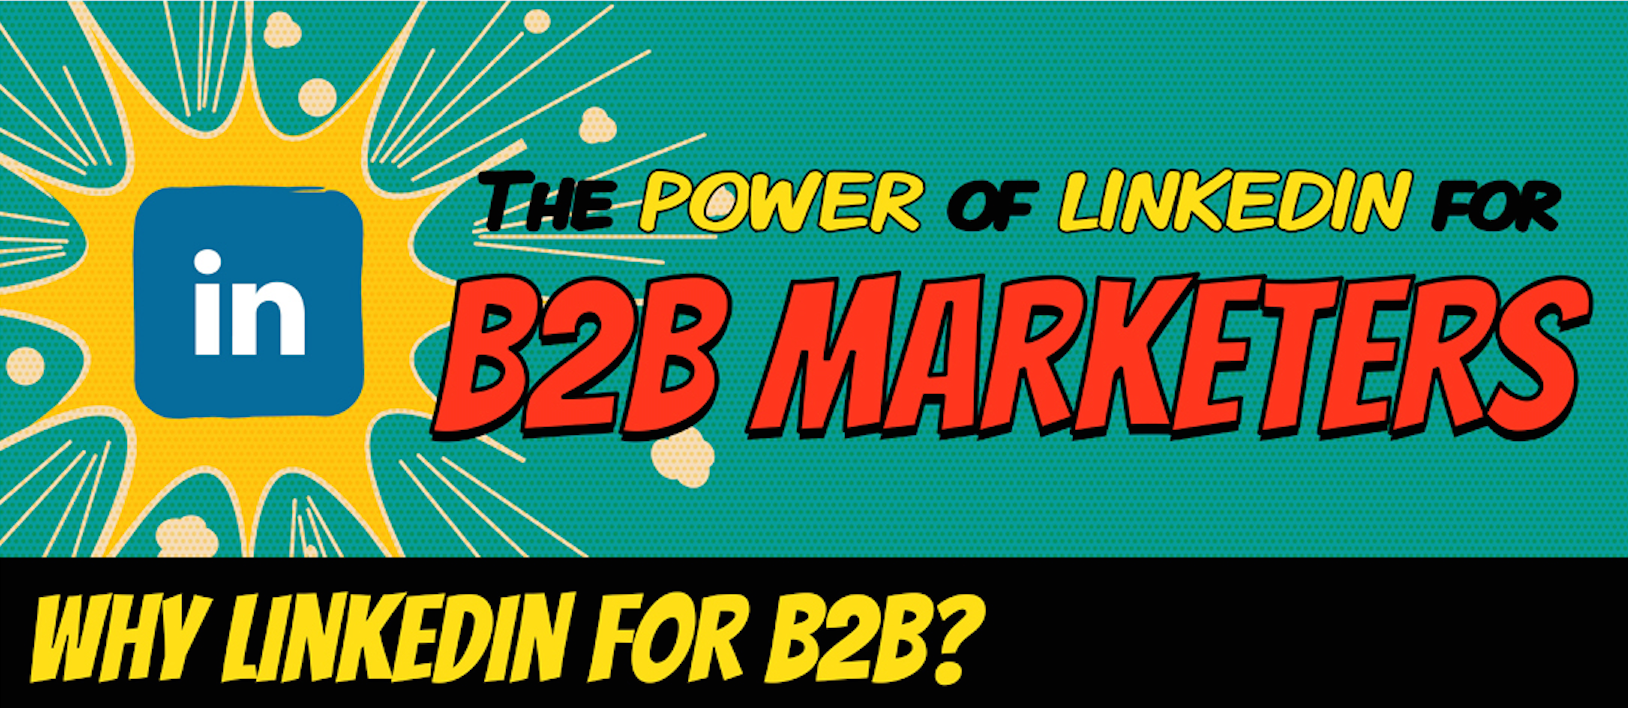 LinkedIn-for-B2B